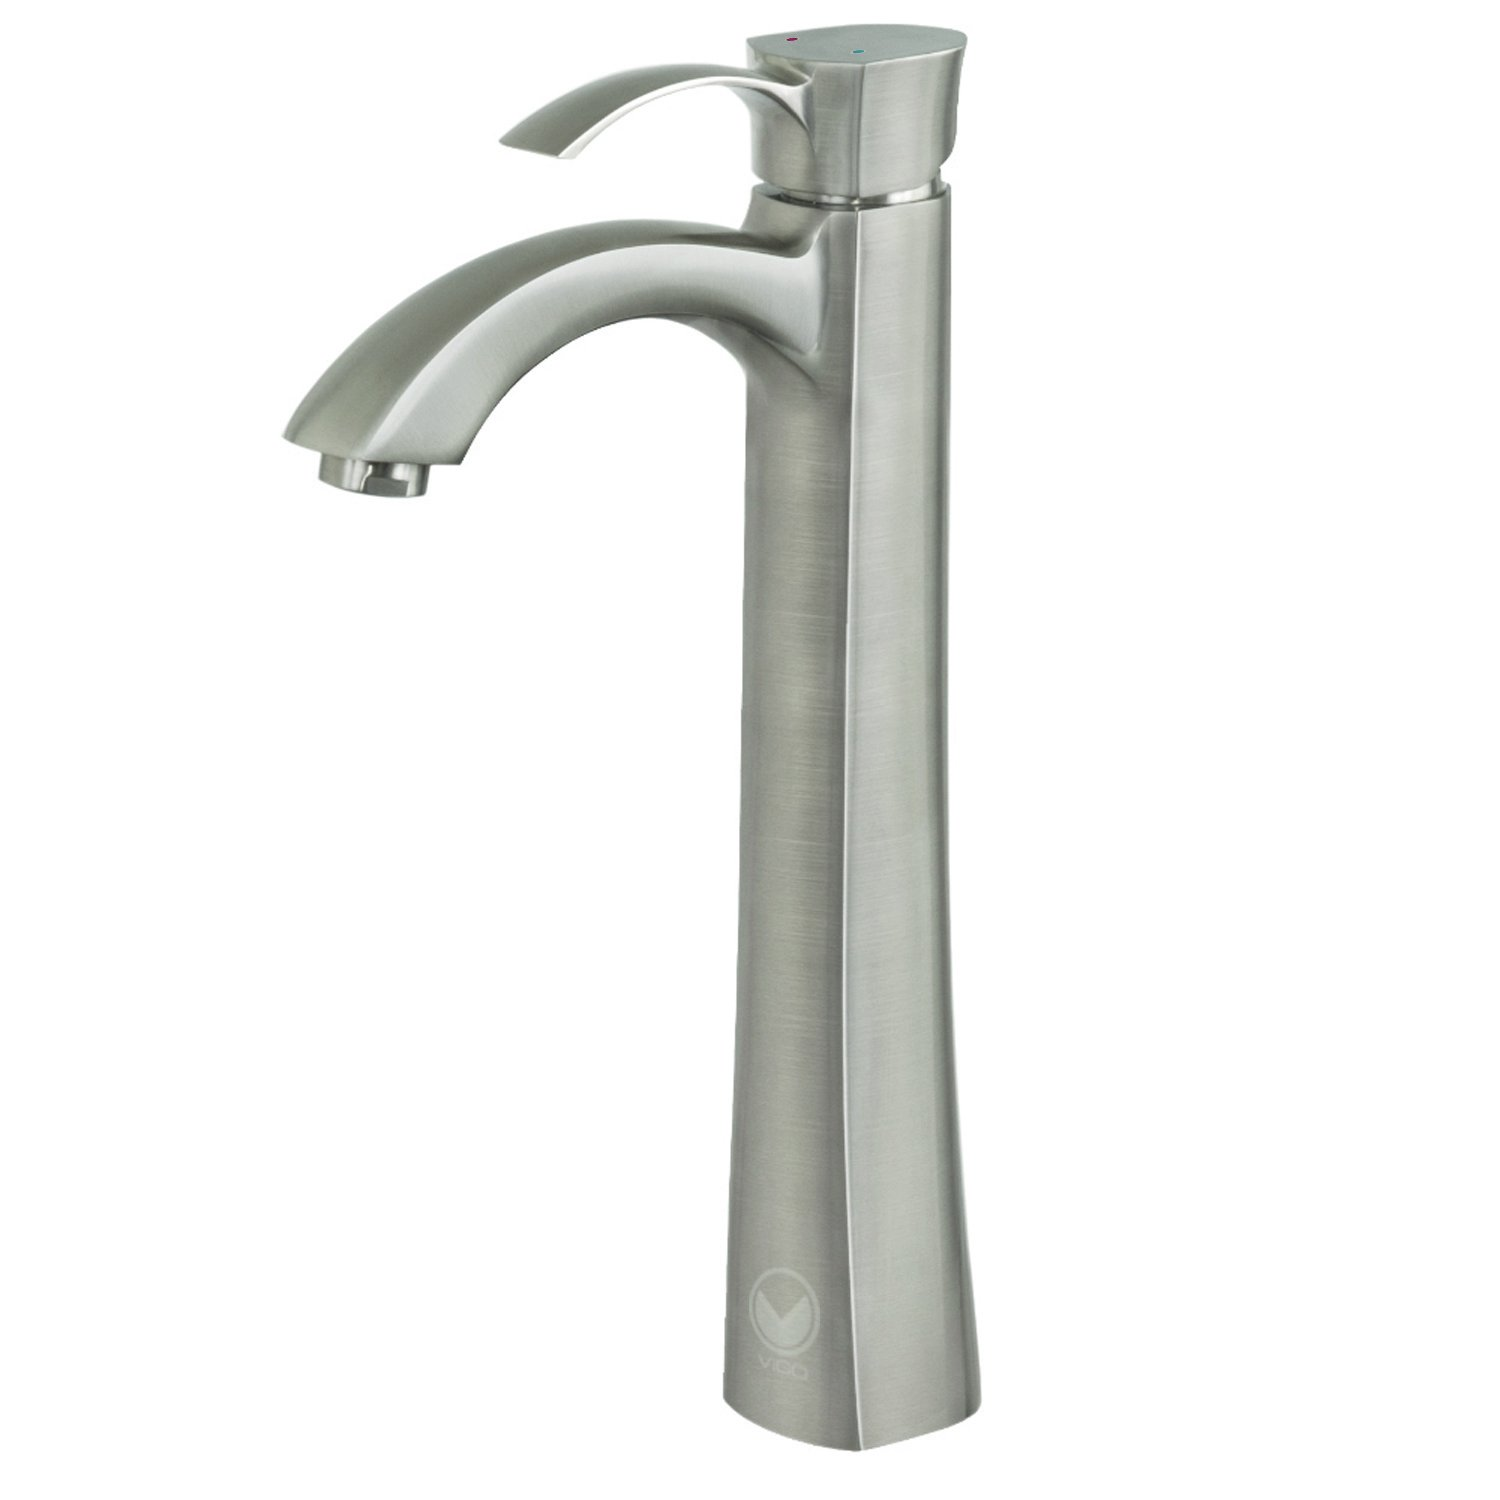 VIGO Otis Single Lever Vessel Bathroom Faucet, Brushed Nickel     Amazon.com